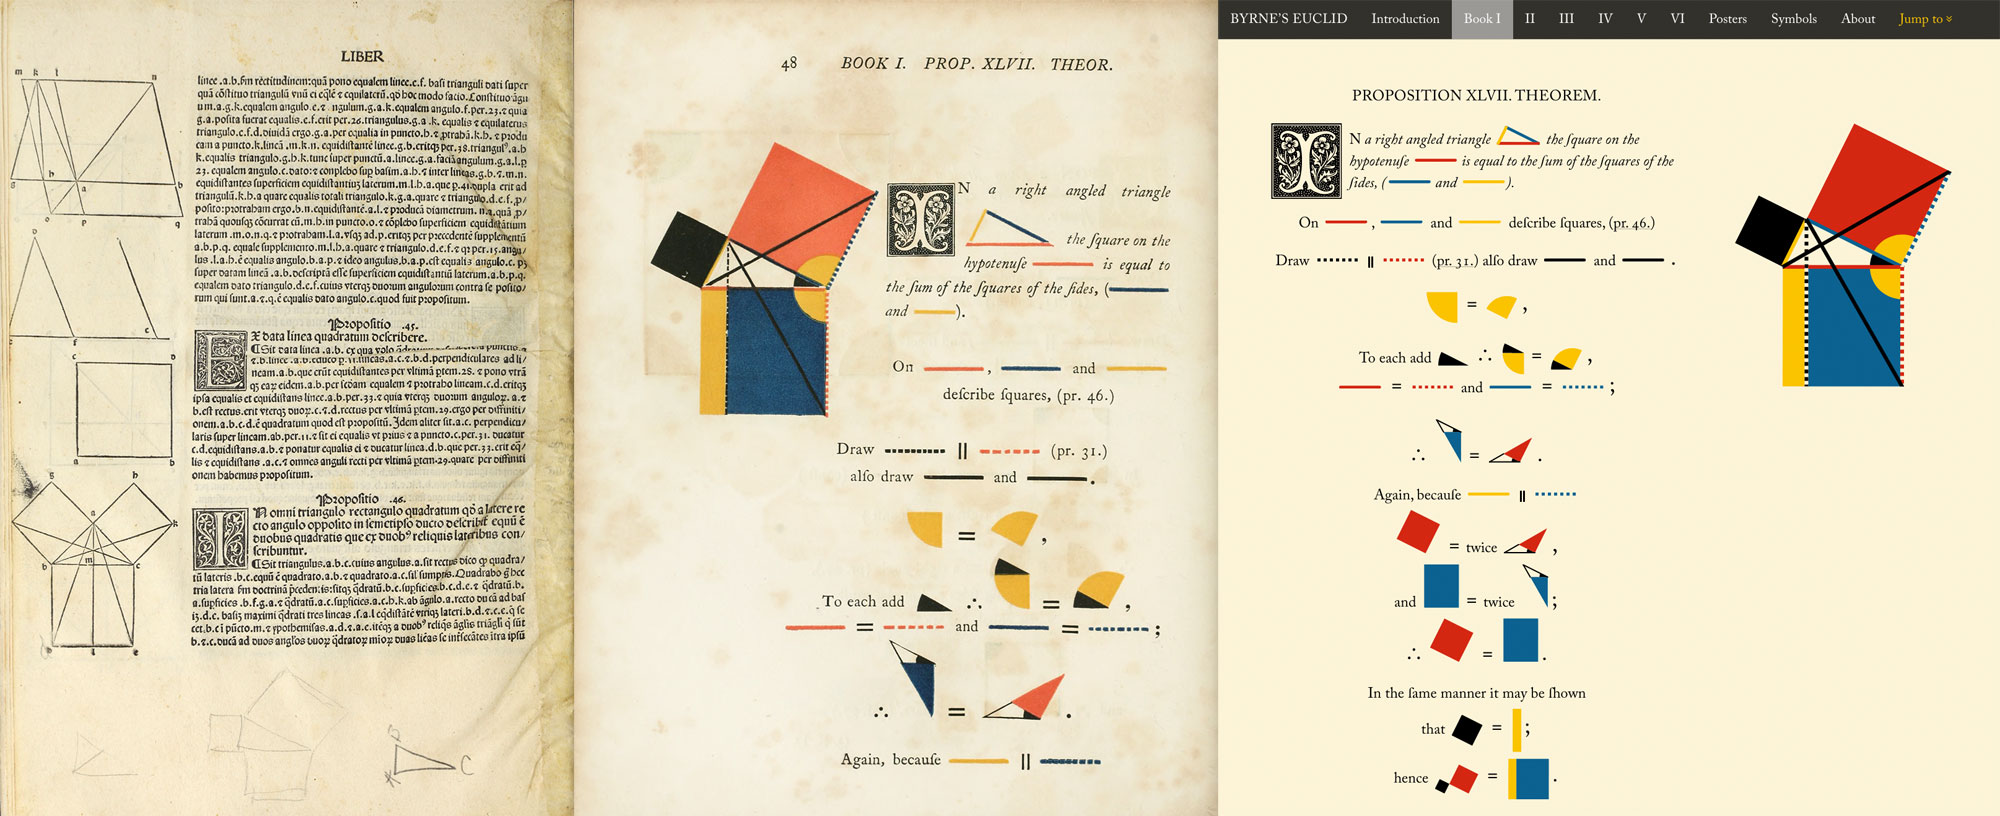 Comparison between first printed edition, Byrne's version, and the new web version